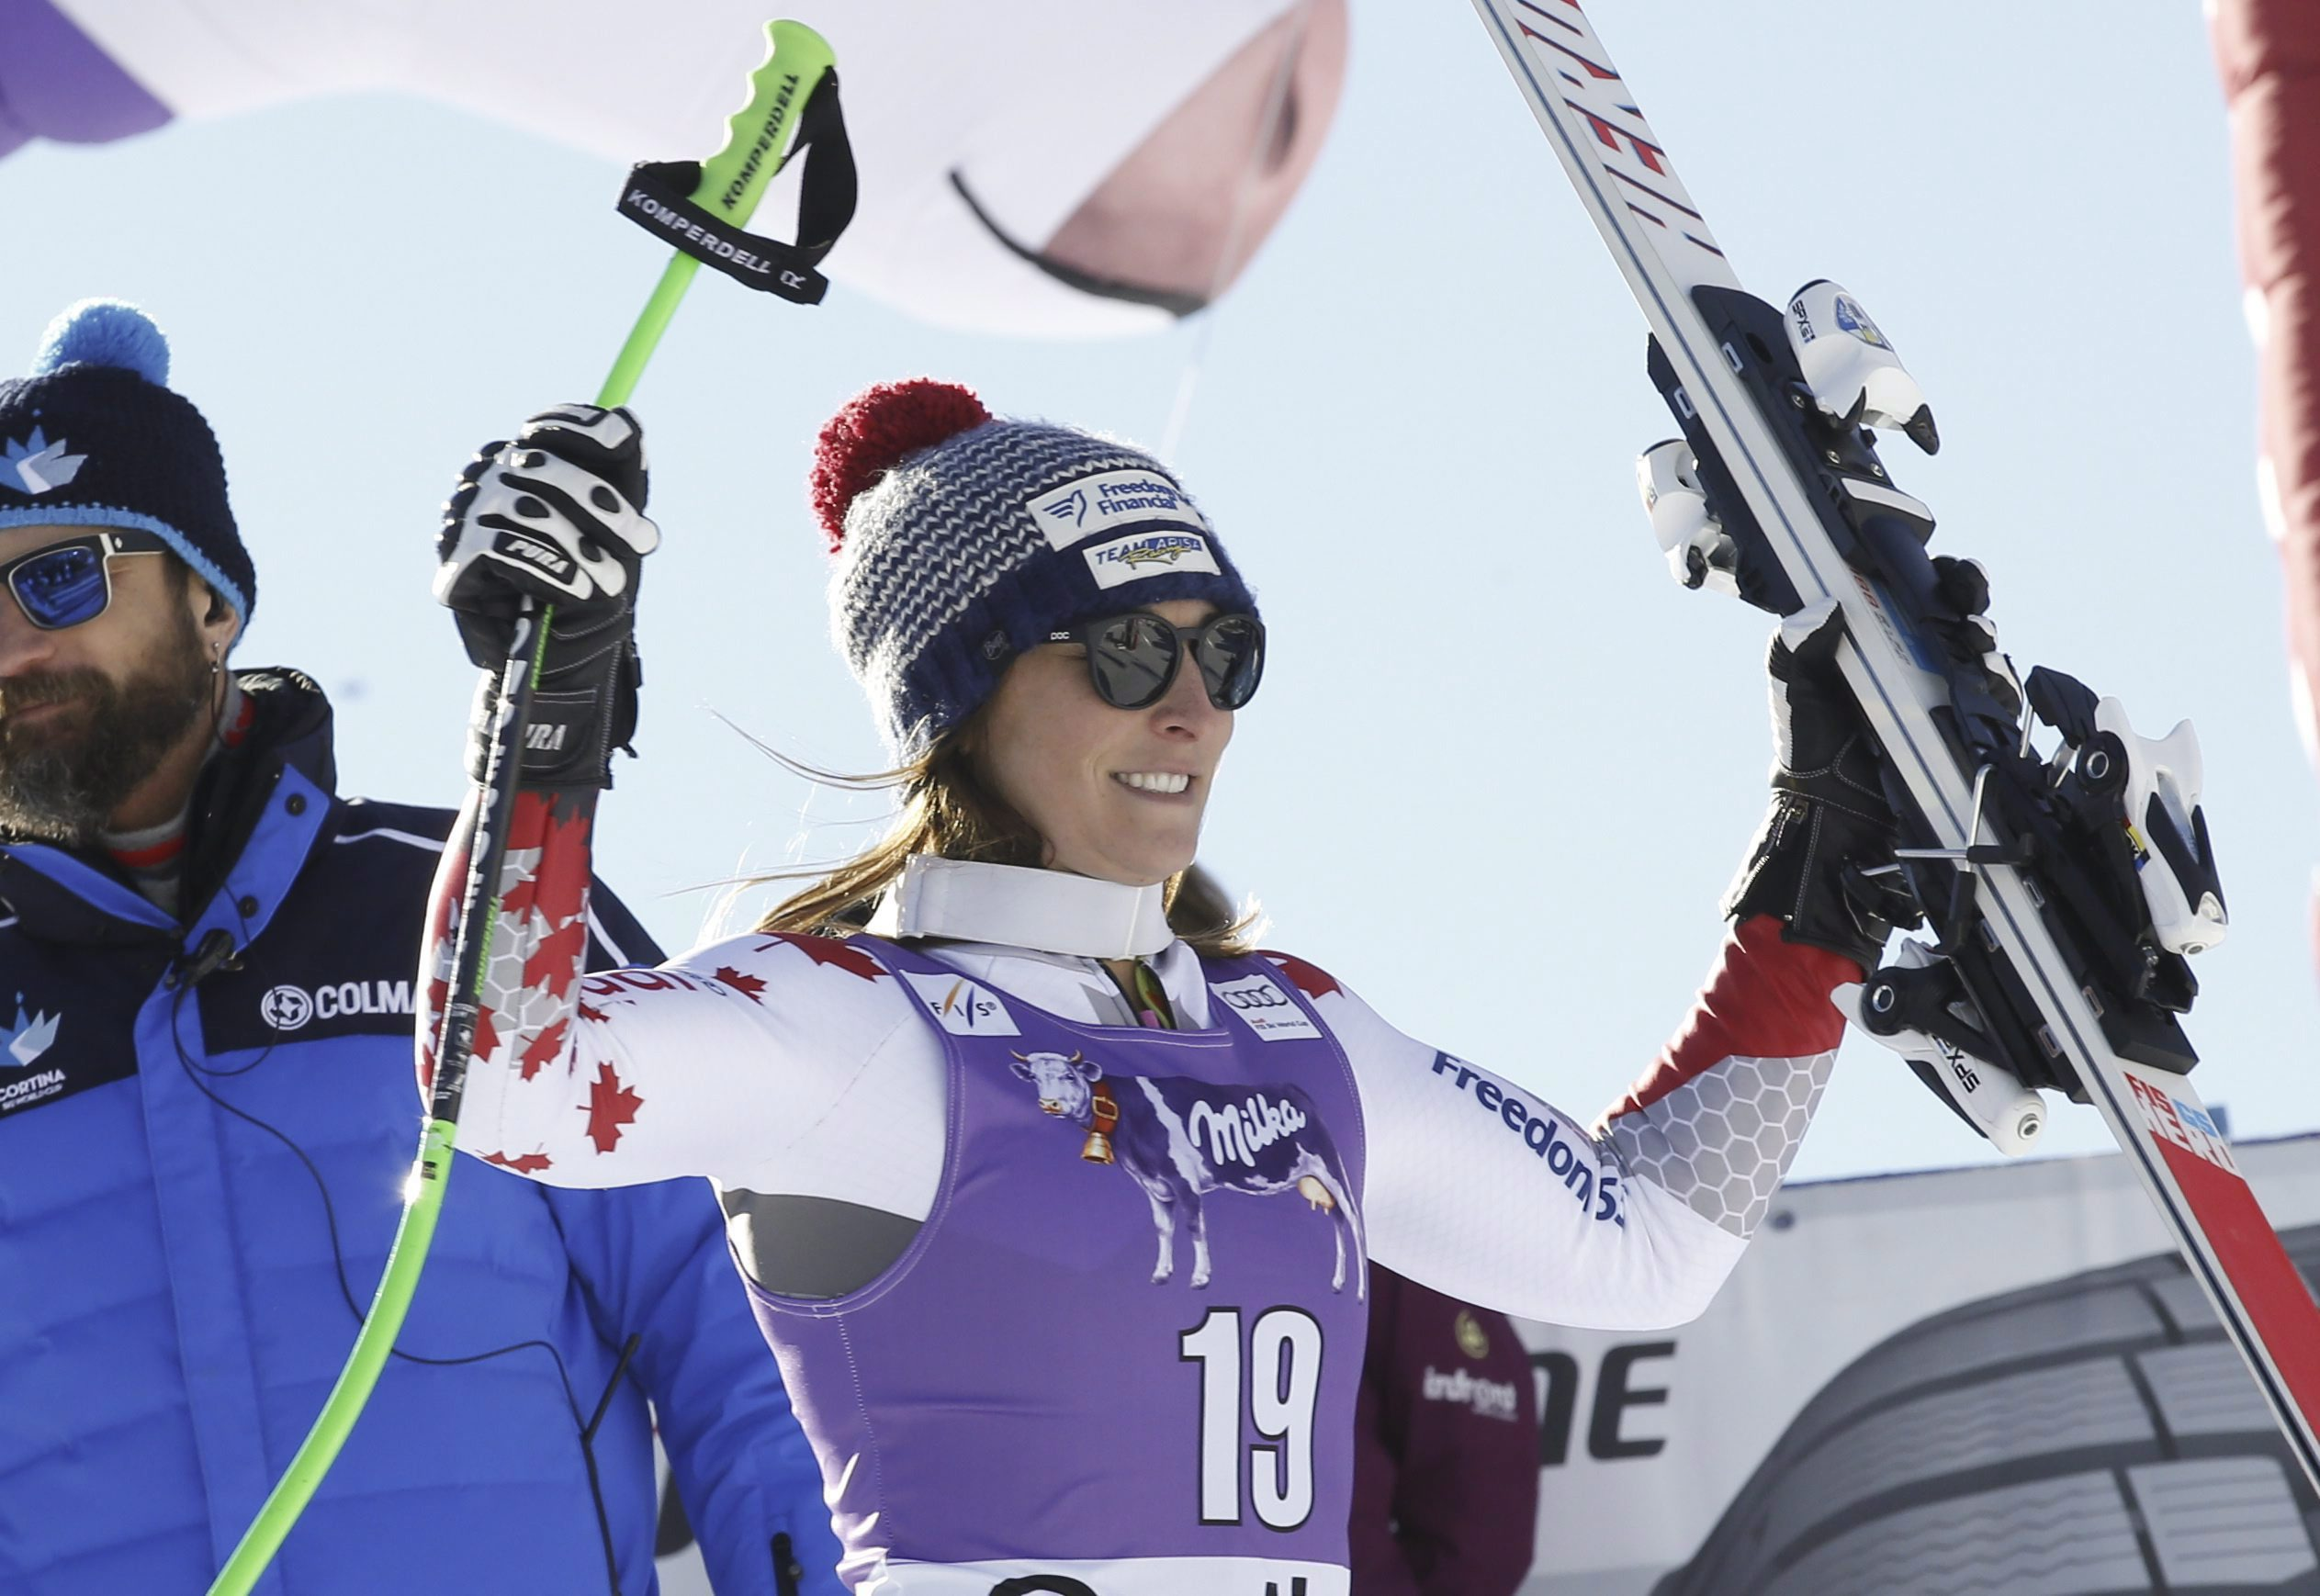 Canada's Larisa Yurkiw celebrates her second place after completing an alpine ski, women's World Cup downhill, in Cortina D'Ampezzo, Italy, Saturday, Jan. 23, 2016. (AP Photo/Armando Trovati)